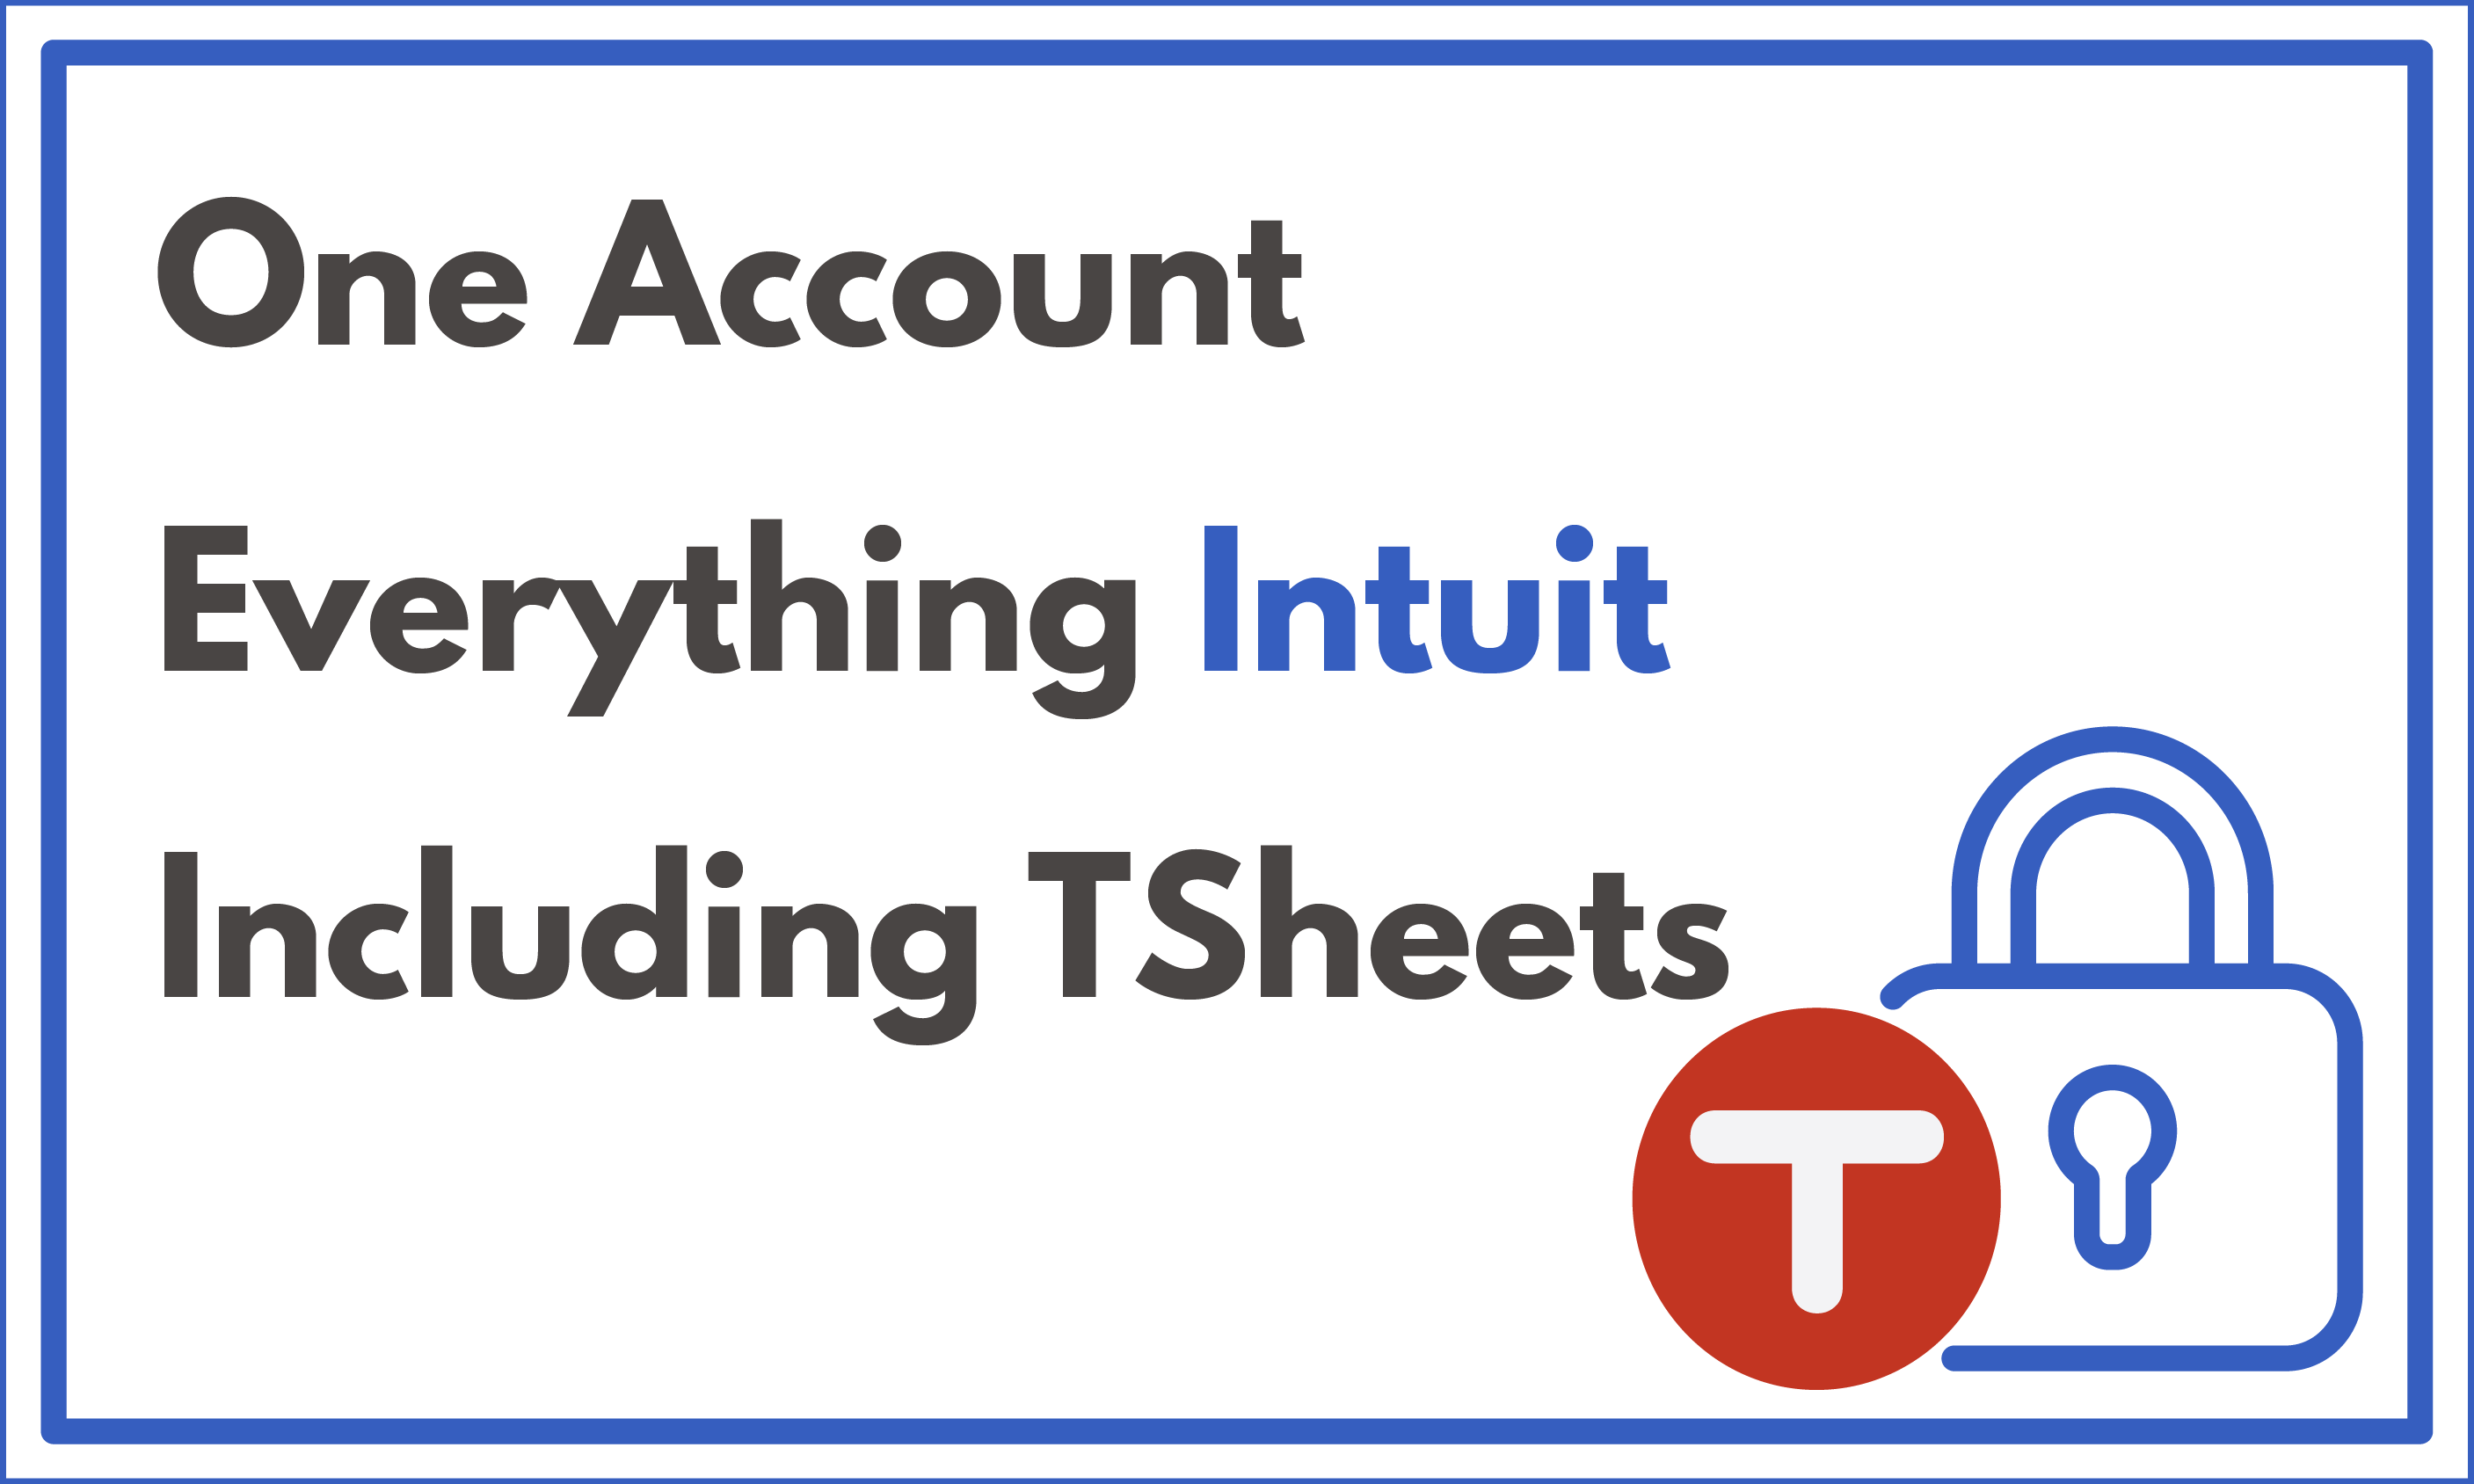 One Account Everything Intuit Including TSheets